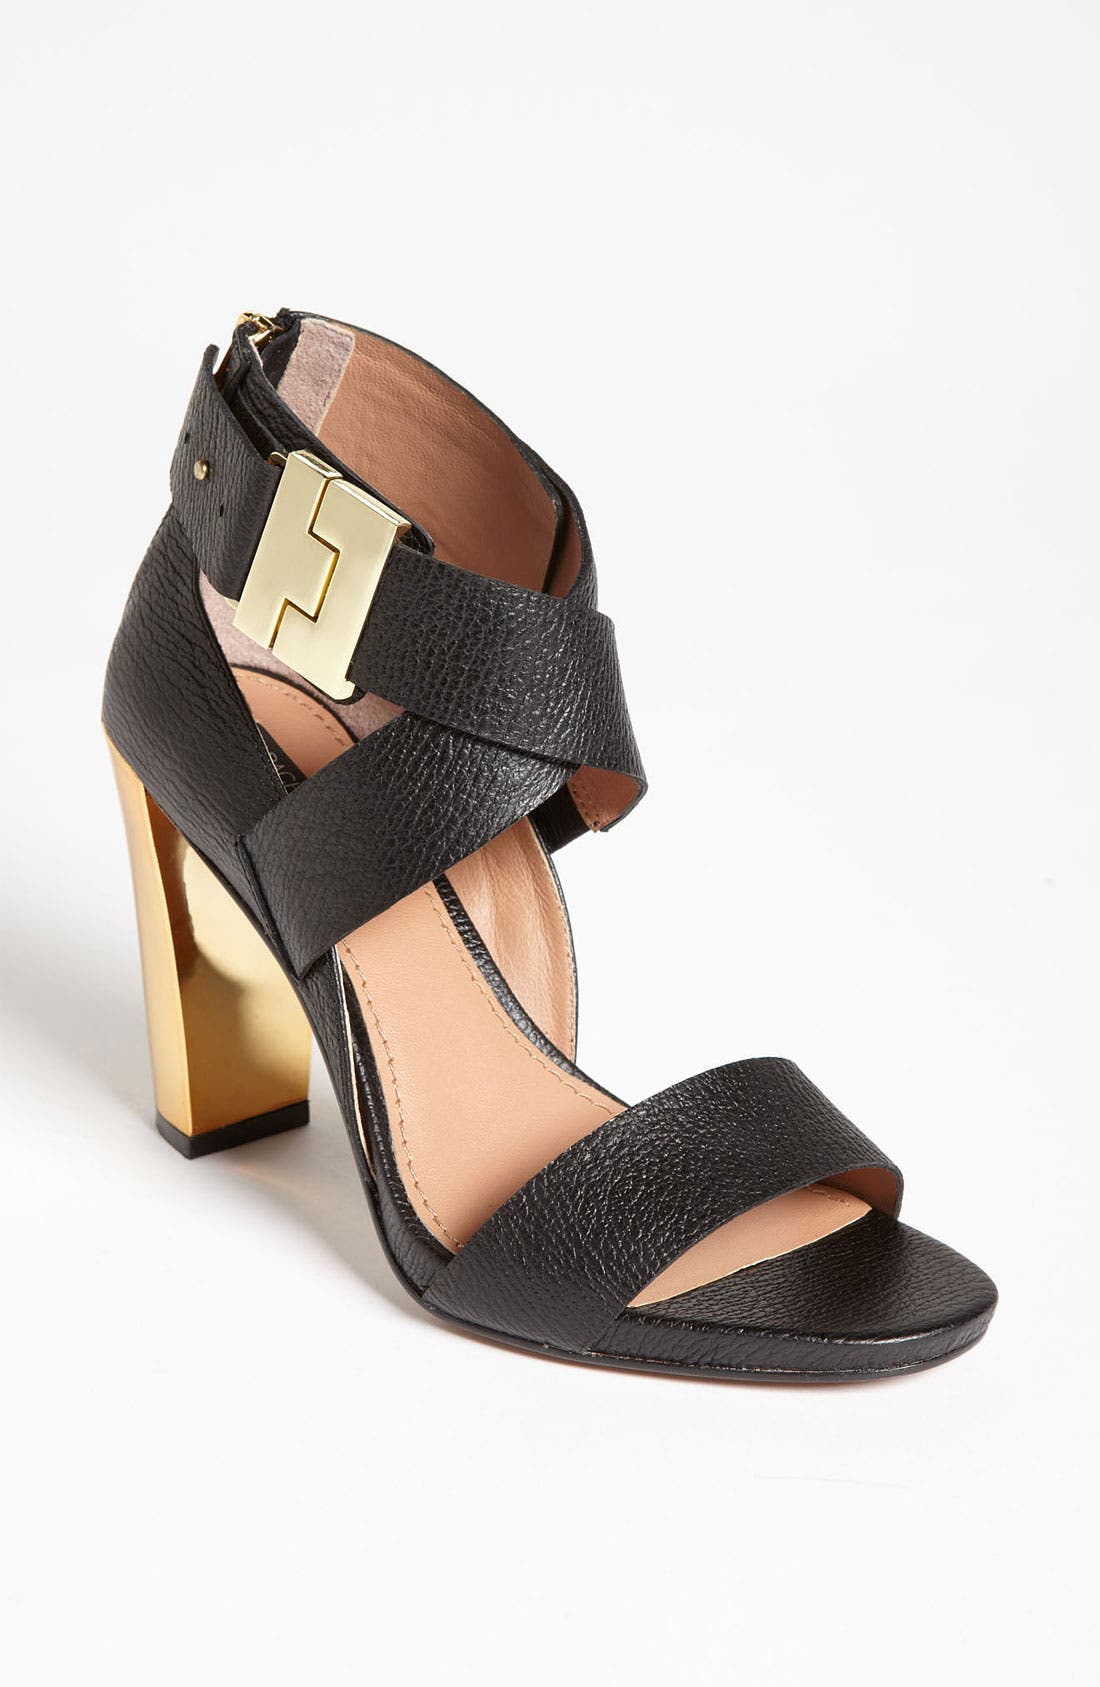 Alternate Image 1 Selected - Rachel Zoe 'Brooklyn' Sandal